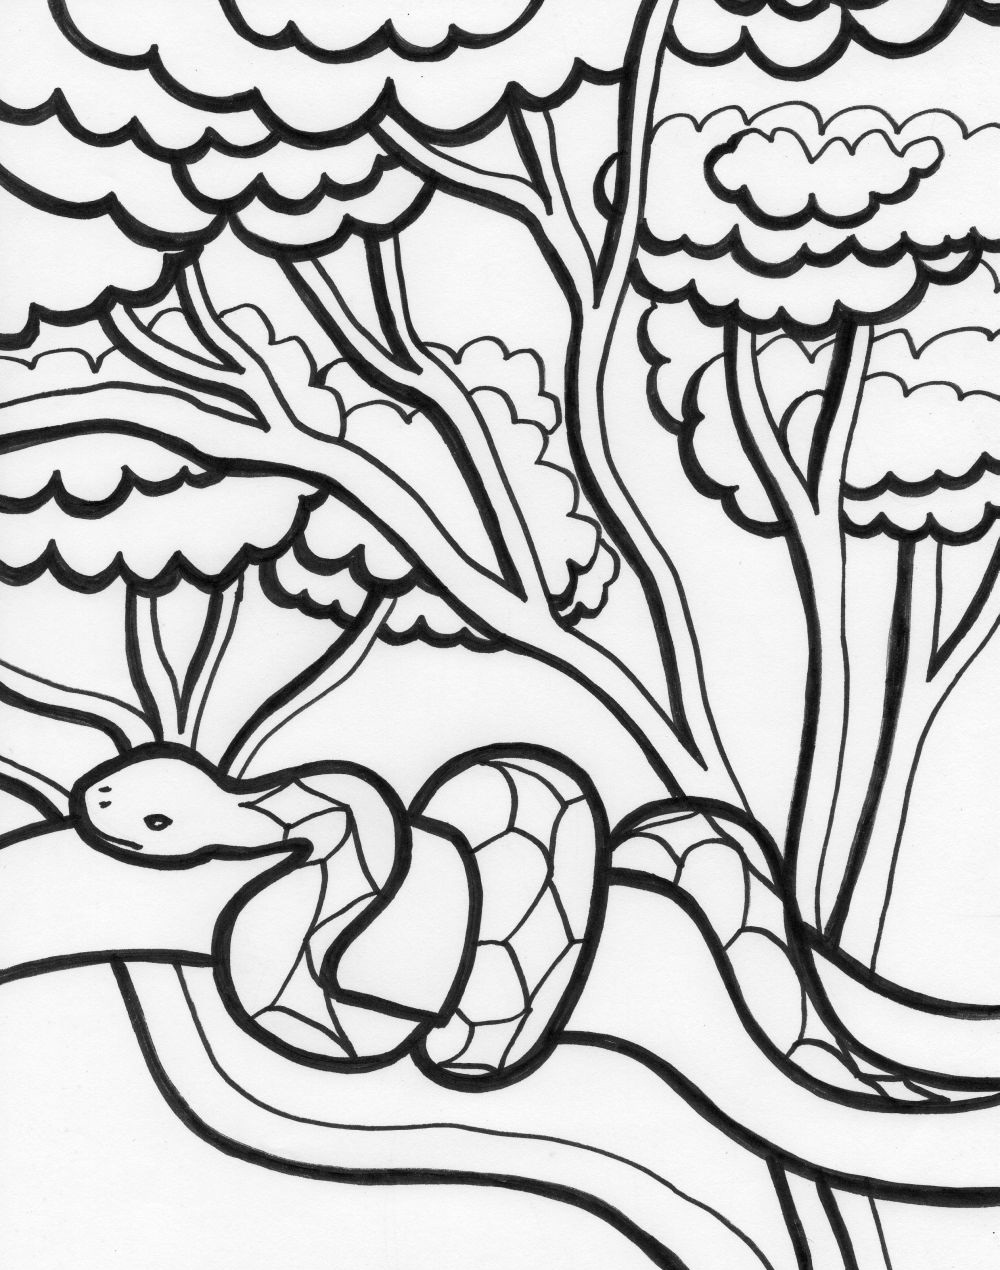 Snake Coloring Pages 14 Coloring